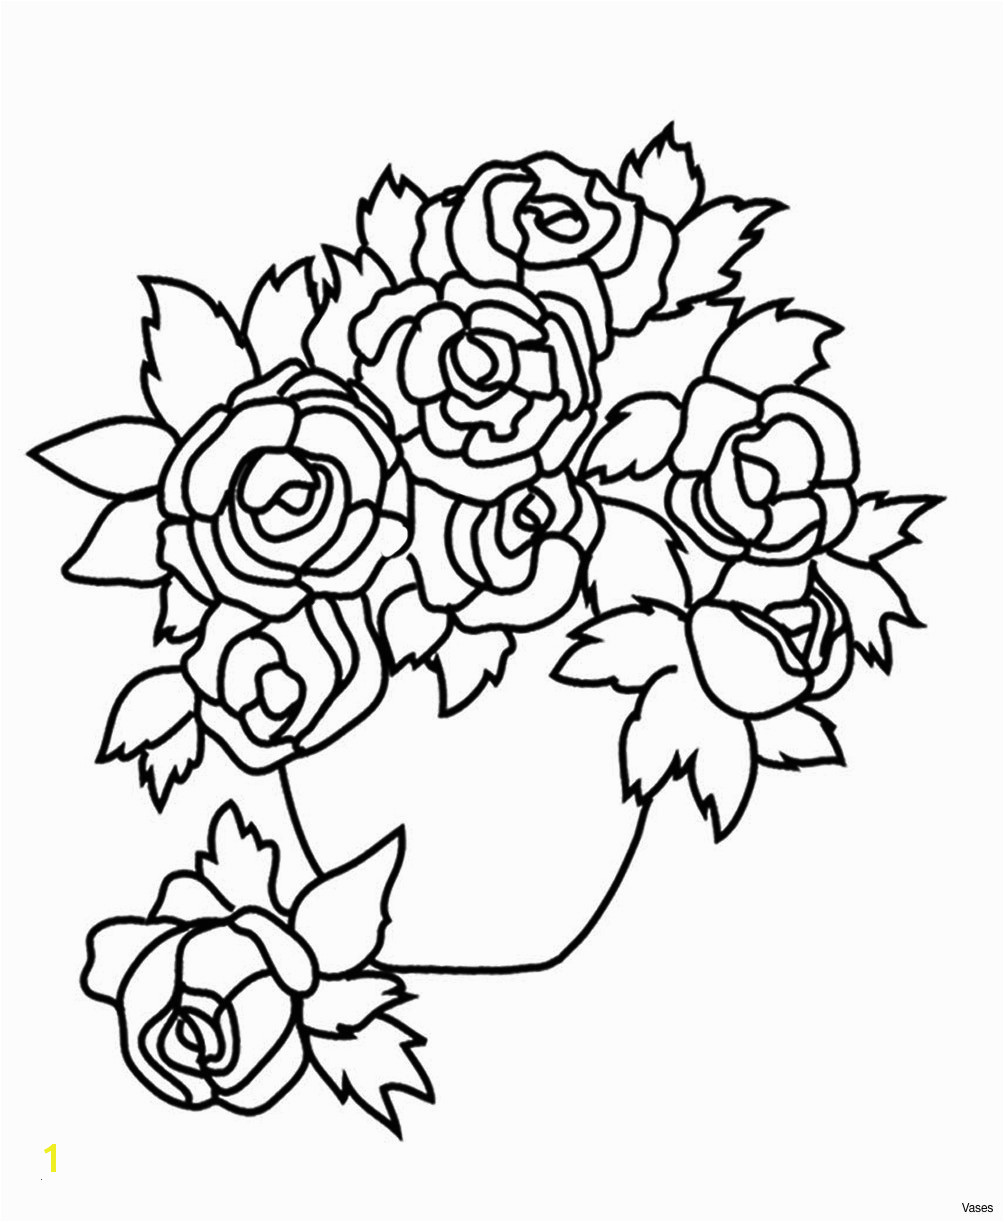 Abstract Coloring Pages for Teenagers Difficult Cool Vases Flower Vase Coloring Page Pages Flowers In